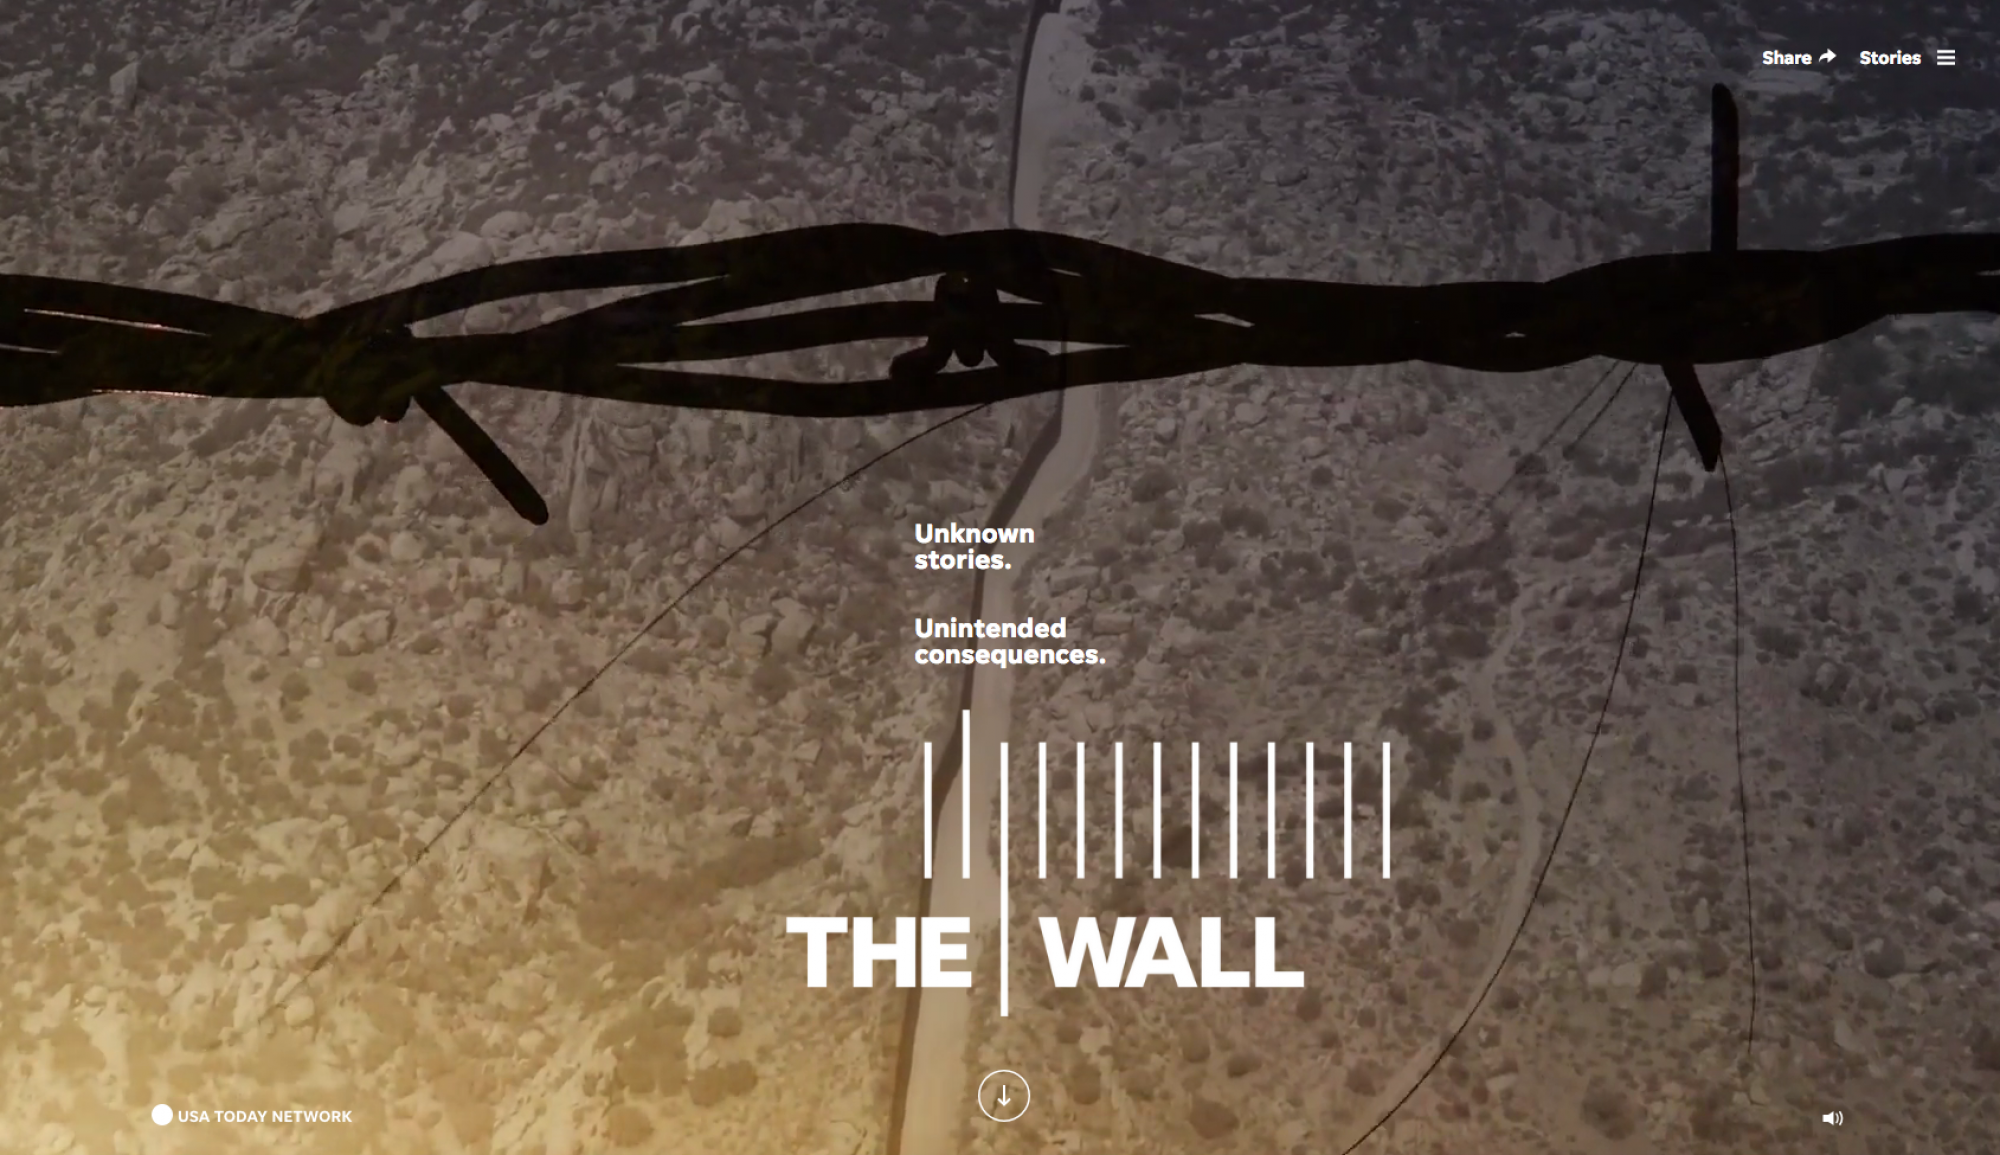 """The Wall"" won the Pulitzer Prize ""for vivid and timely reporting that masterfully combined text, video, podcasts and virtual reality to examine, from multiple perspectives, the difficulties and unintended consequences of fulfilling President Trump's pled"